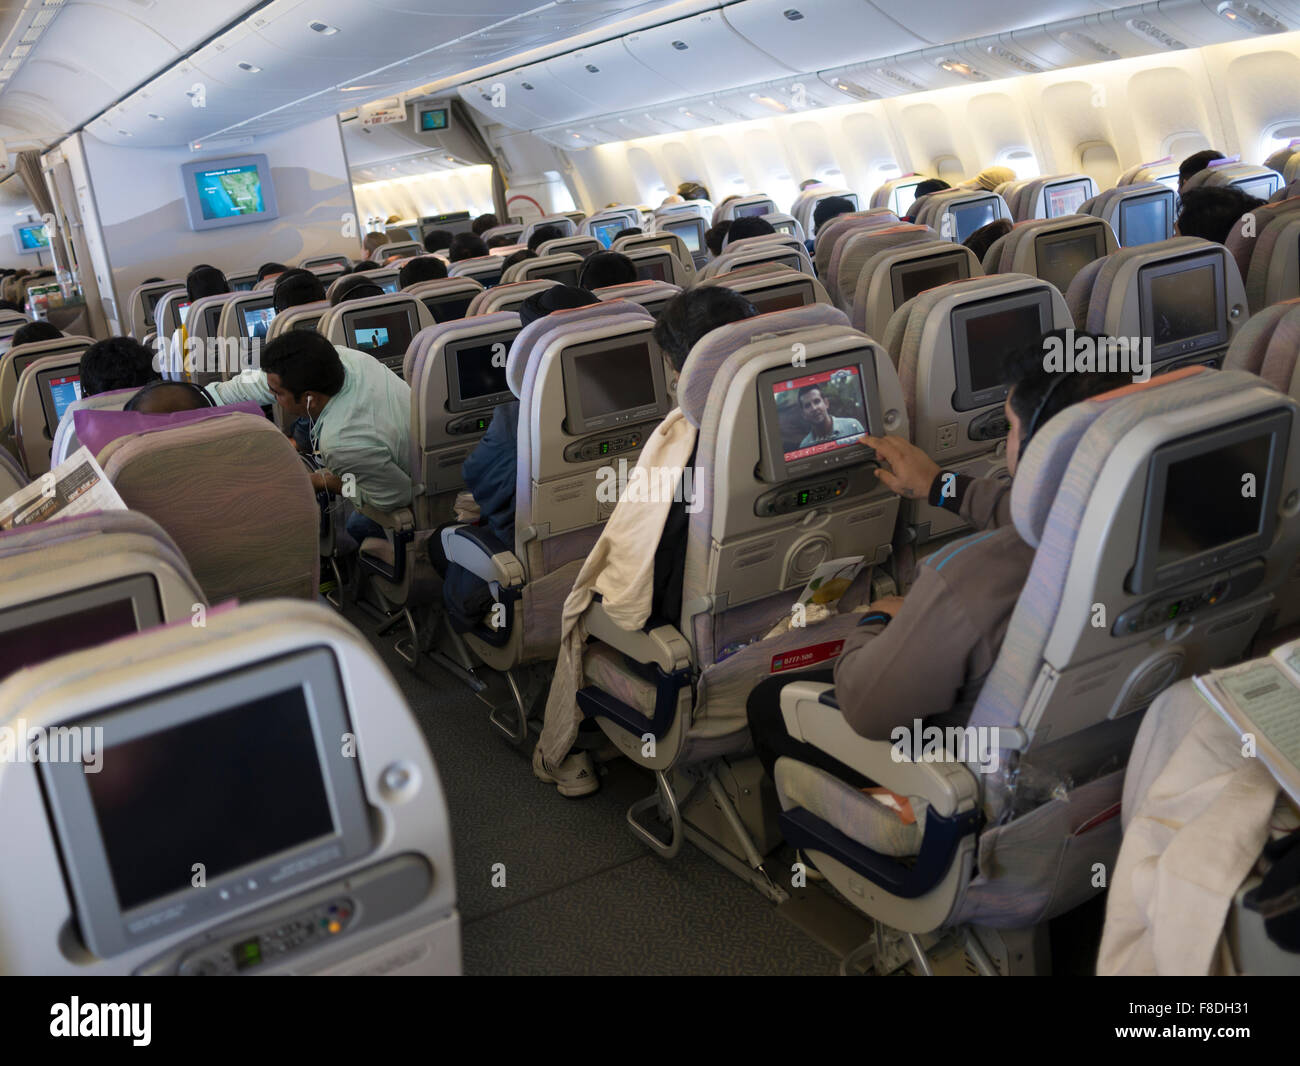 Emirates Introduces Advance Seat Selection Fee The National